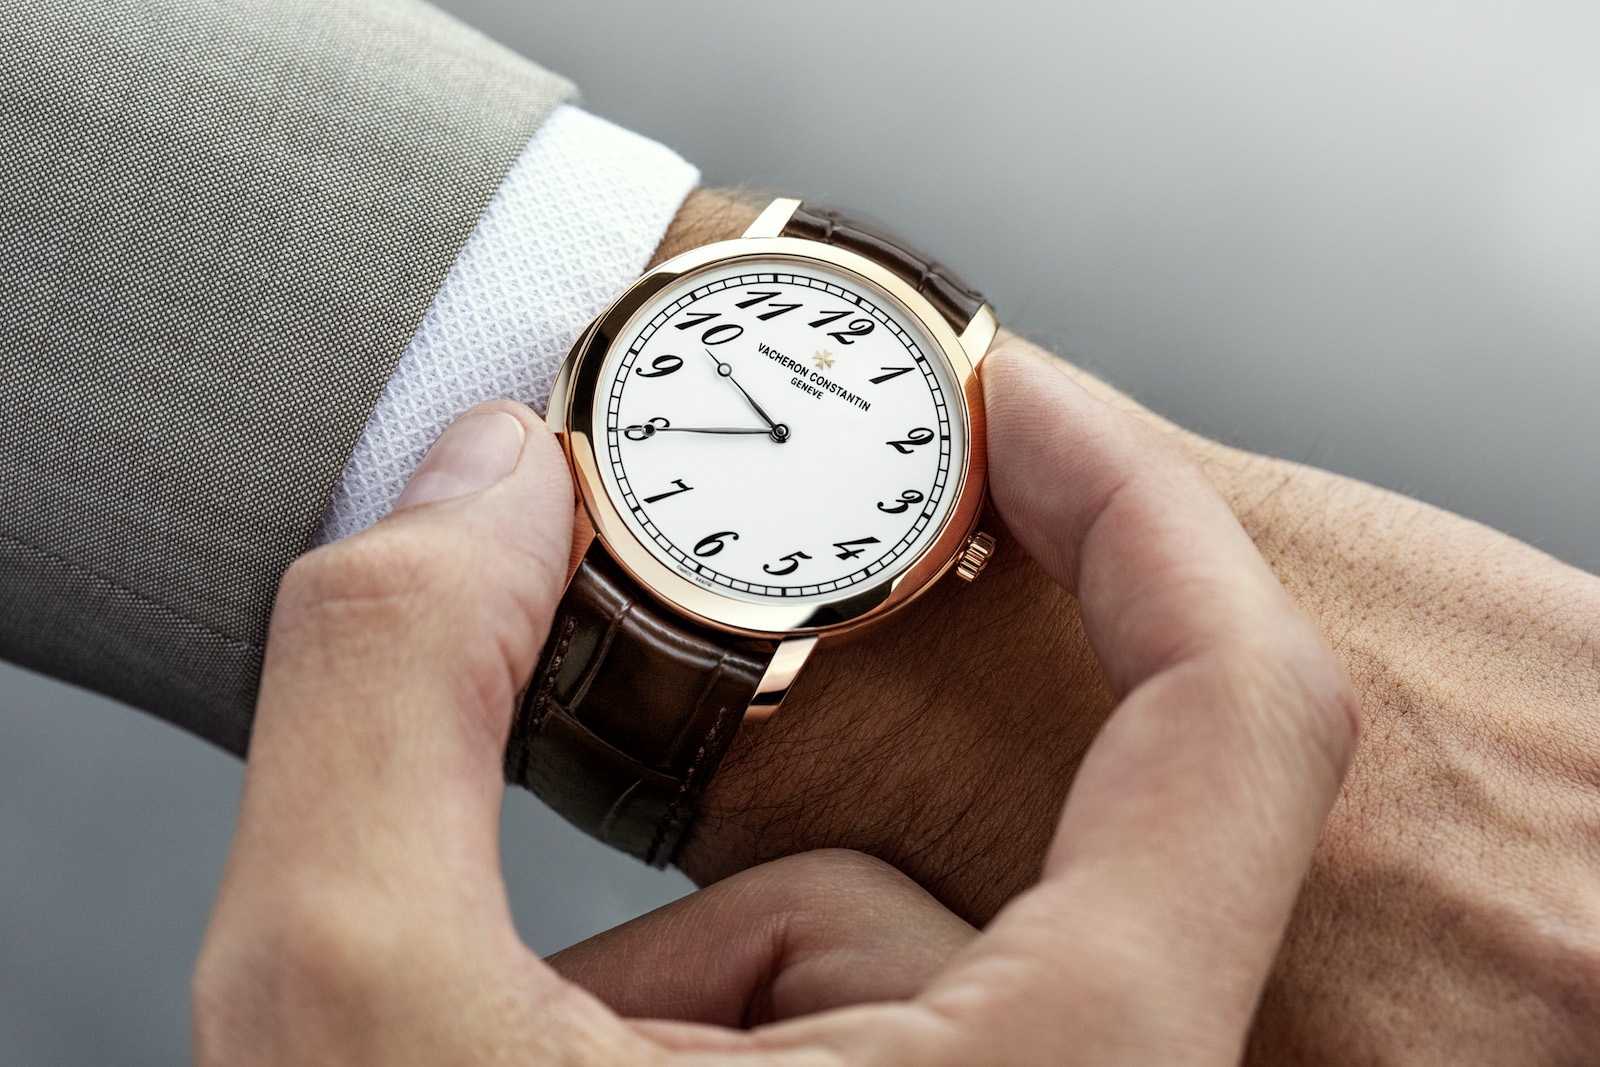 Vacheron Constantin Les Cabinotiers Minute Repeater Ultra-Thin